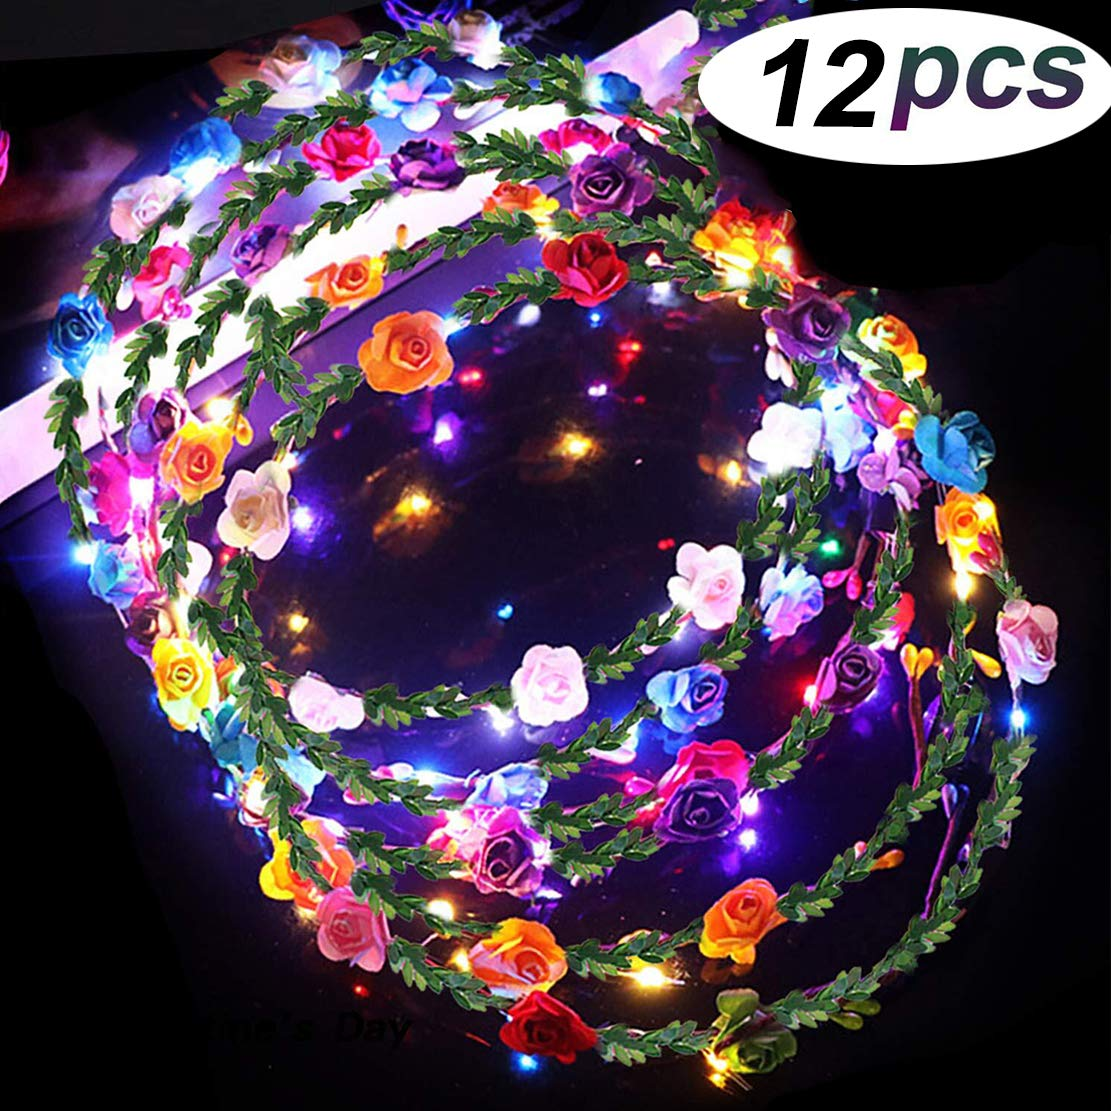 12 Pack LED Flower Headband Crown, Halloween Glow in The Dark Party Supplies Birthday Light Up Toys Party Favors for Kids Teens Girls Women Wedding Wreath Headdress Dress Up Holiday Christmas Gifts by AMENON